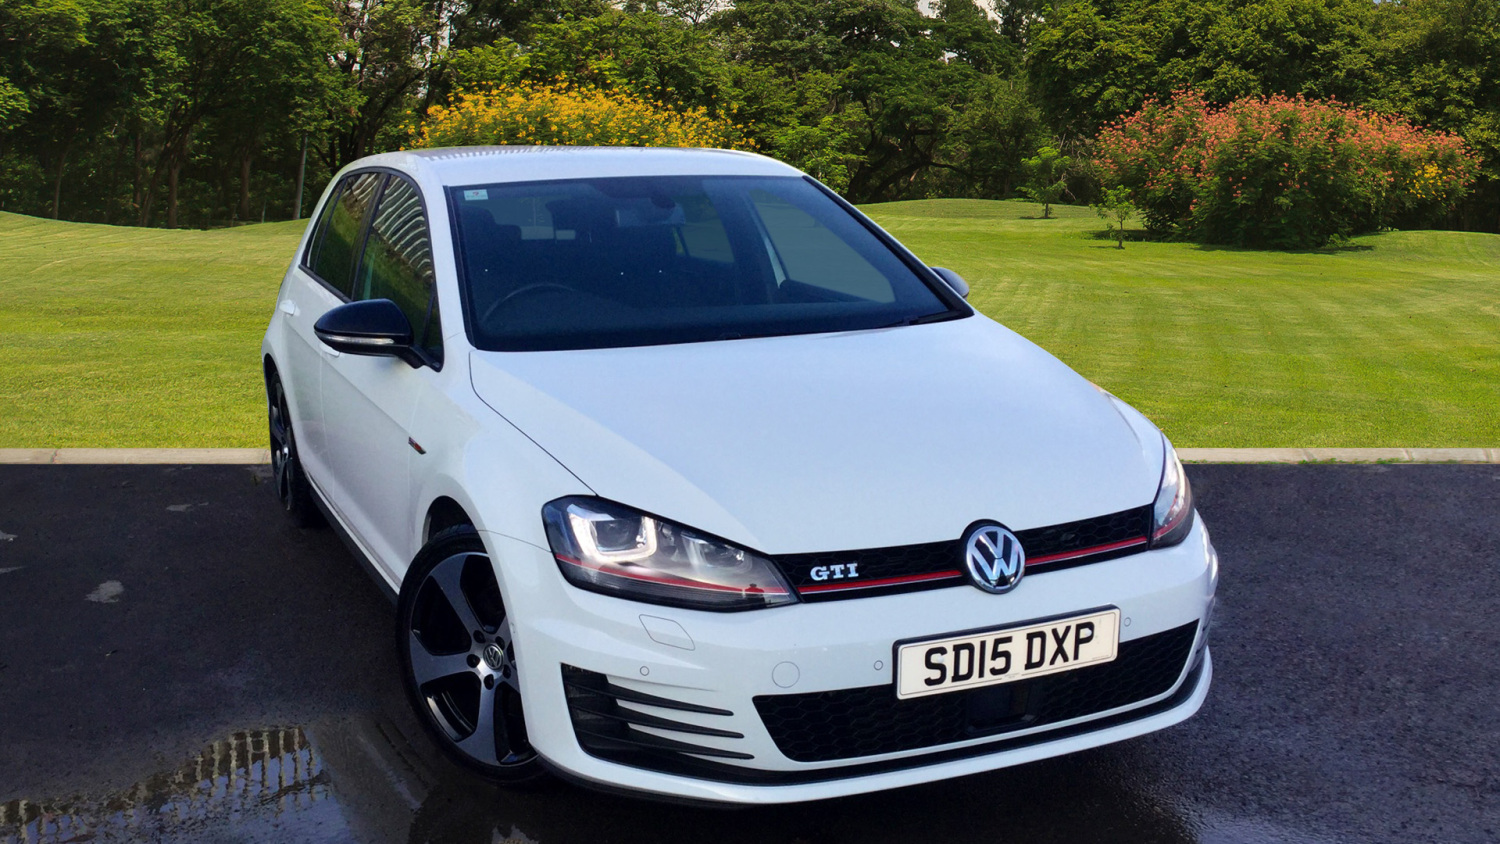 Used Volkswagen Golf 2 0 Tsi Gti 5dr Petrol Hatchback For